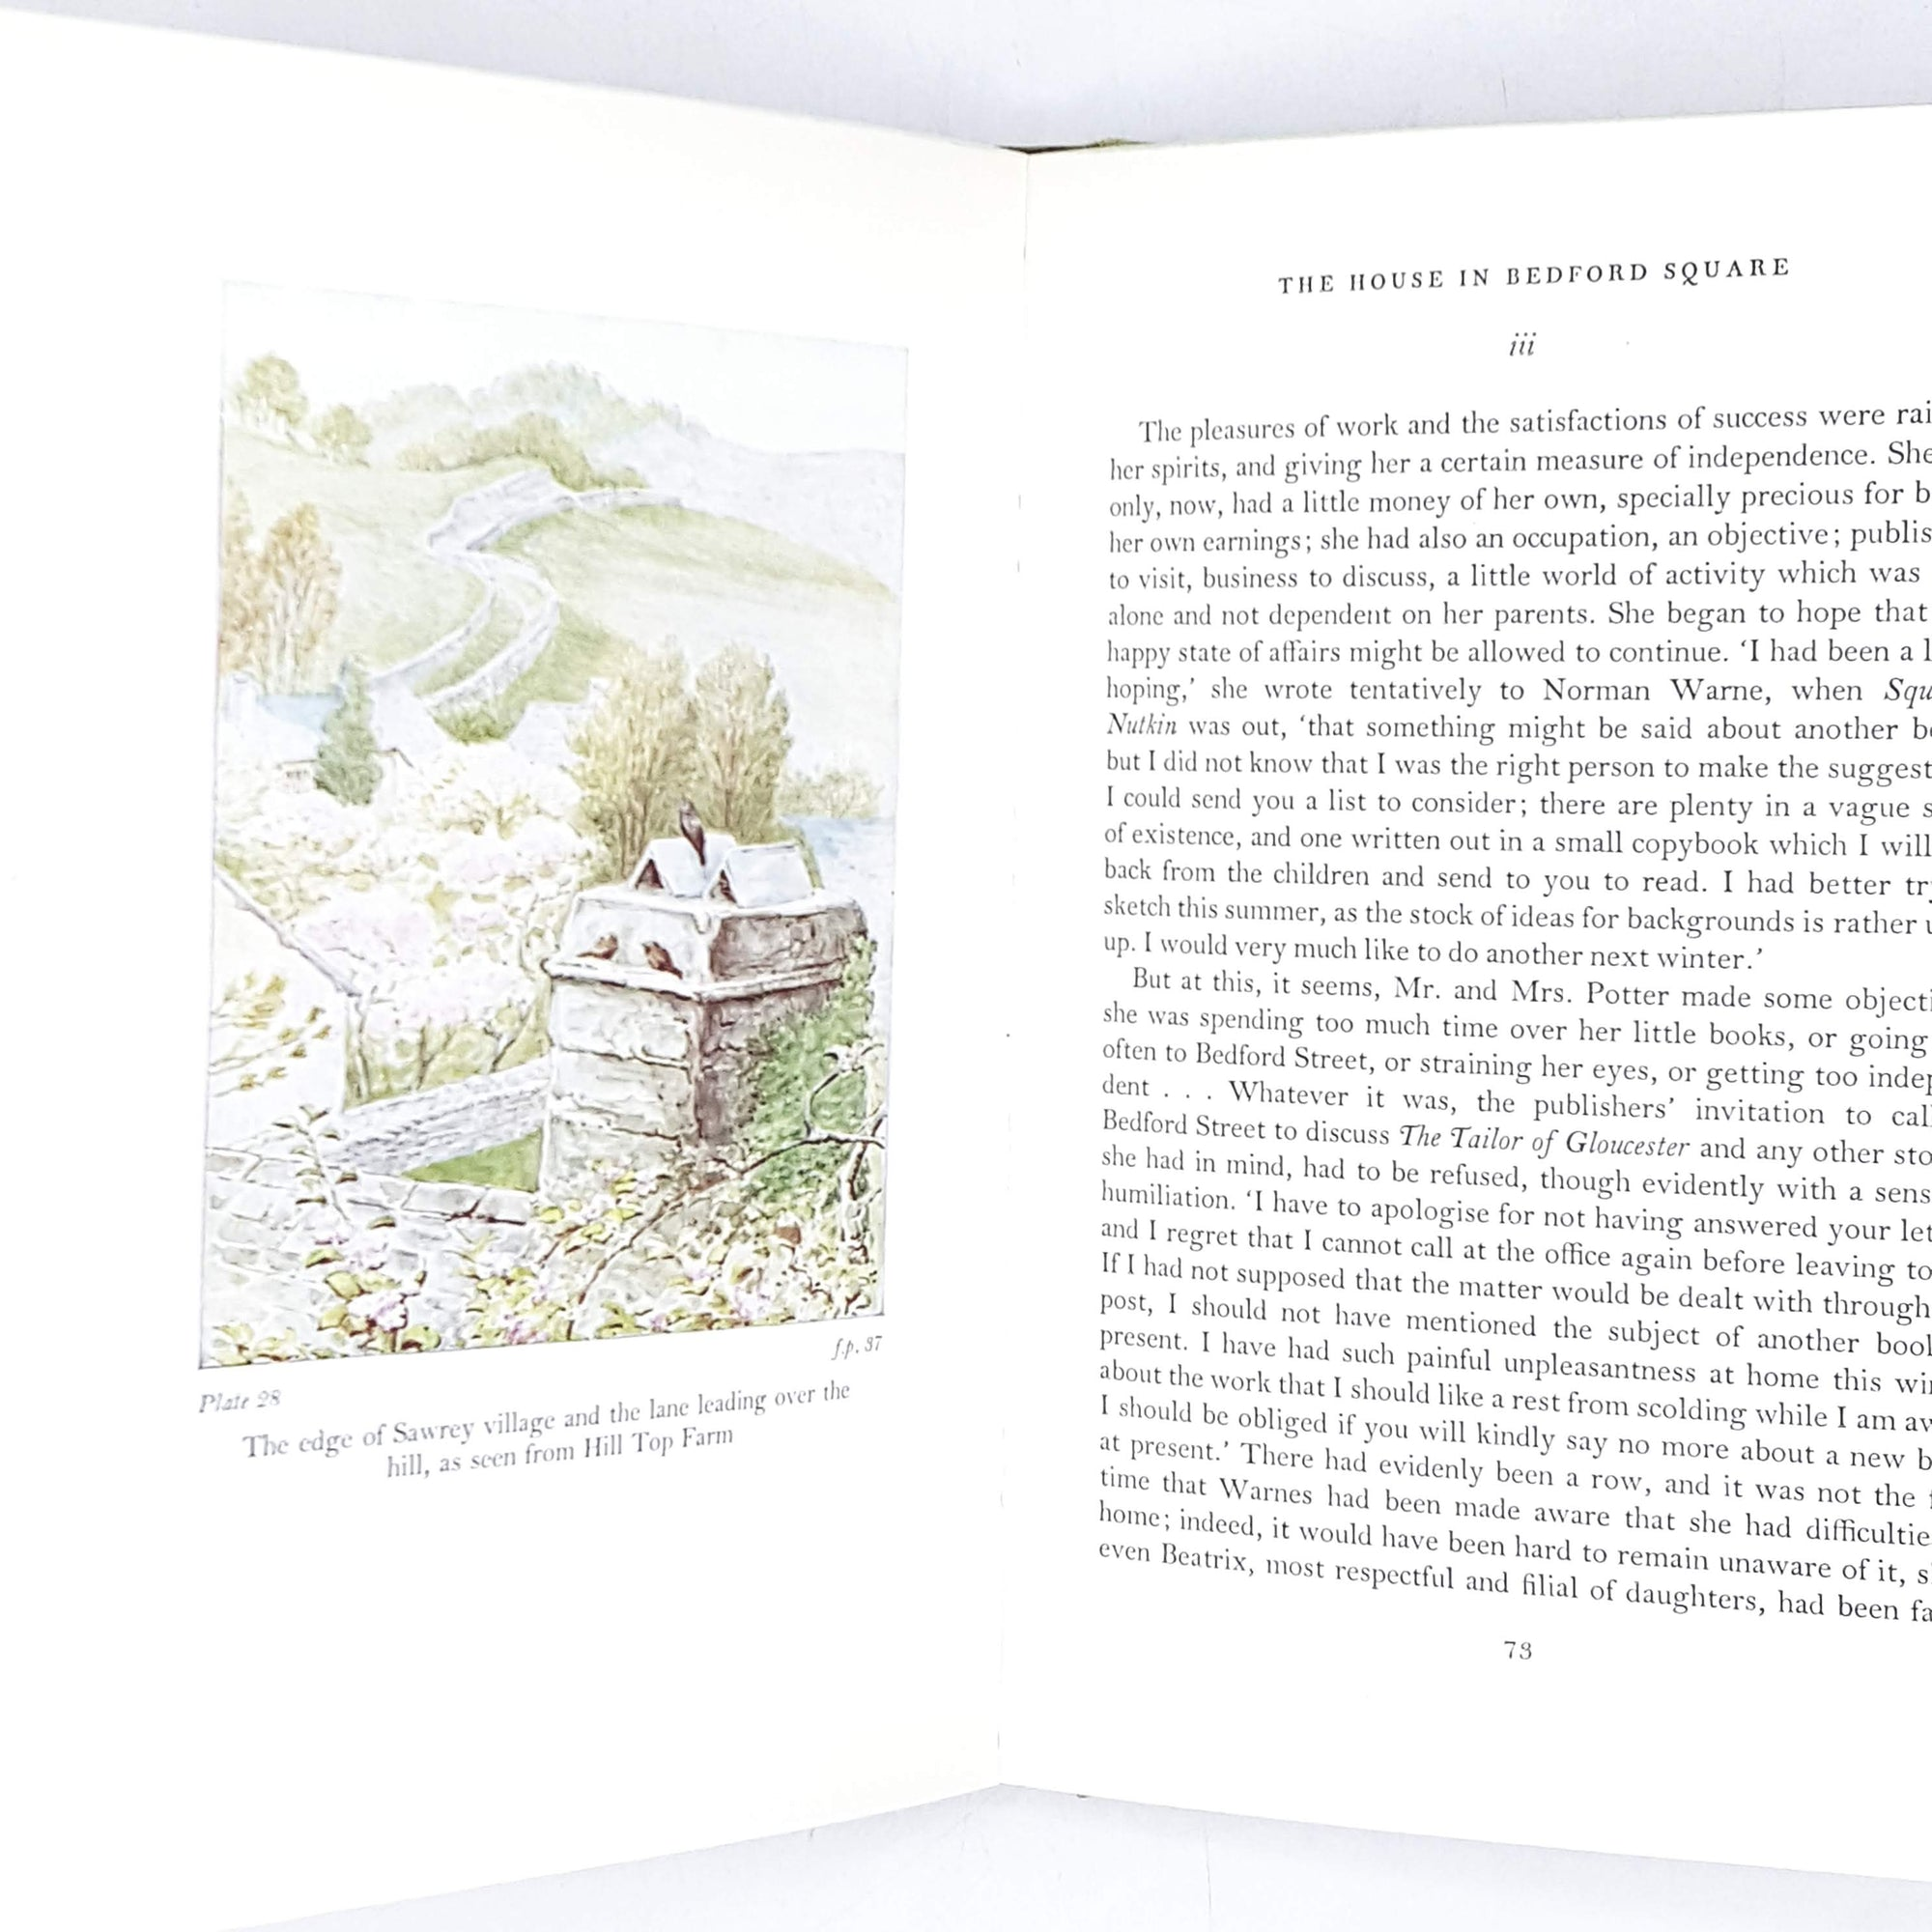 Beatrix Potter's Tale: A Biography by Margaret Lane 1968